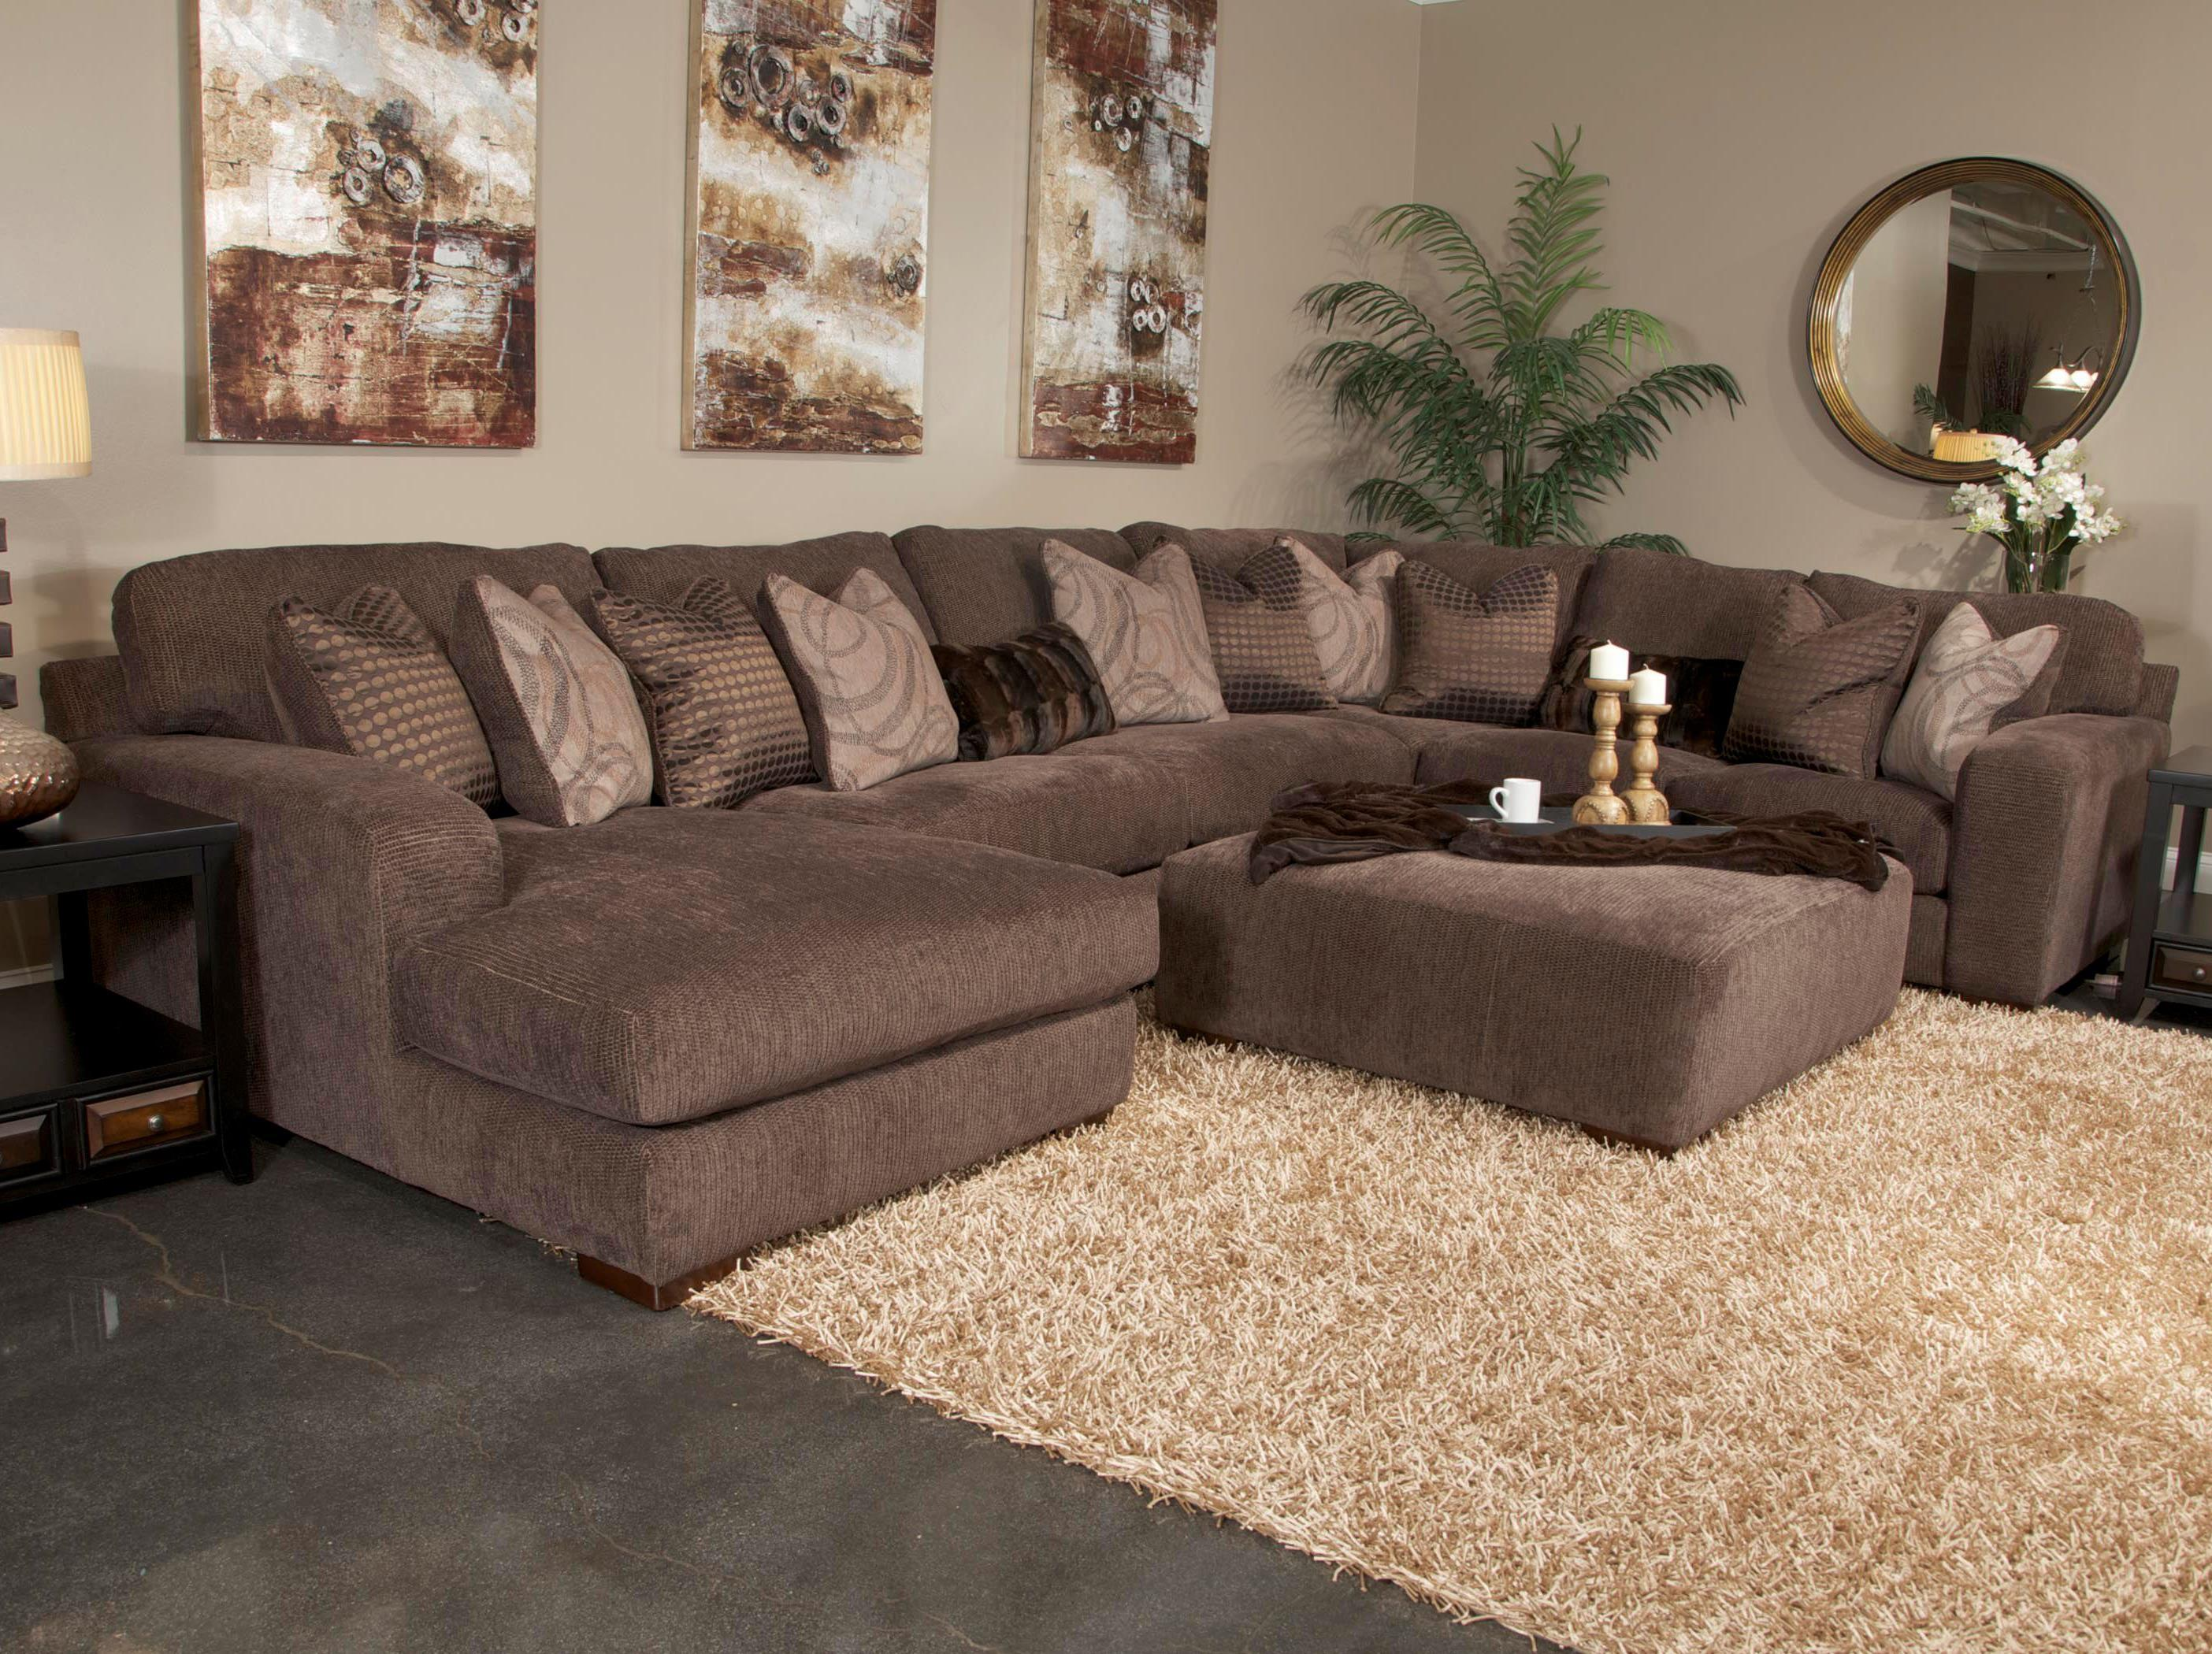 Five Seat Sectional Sofa with Chaise on Left Side by Jackson